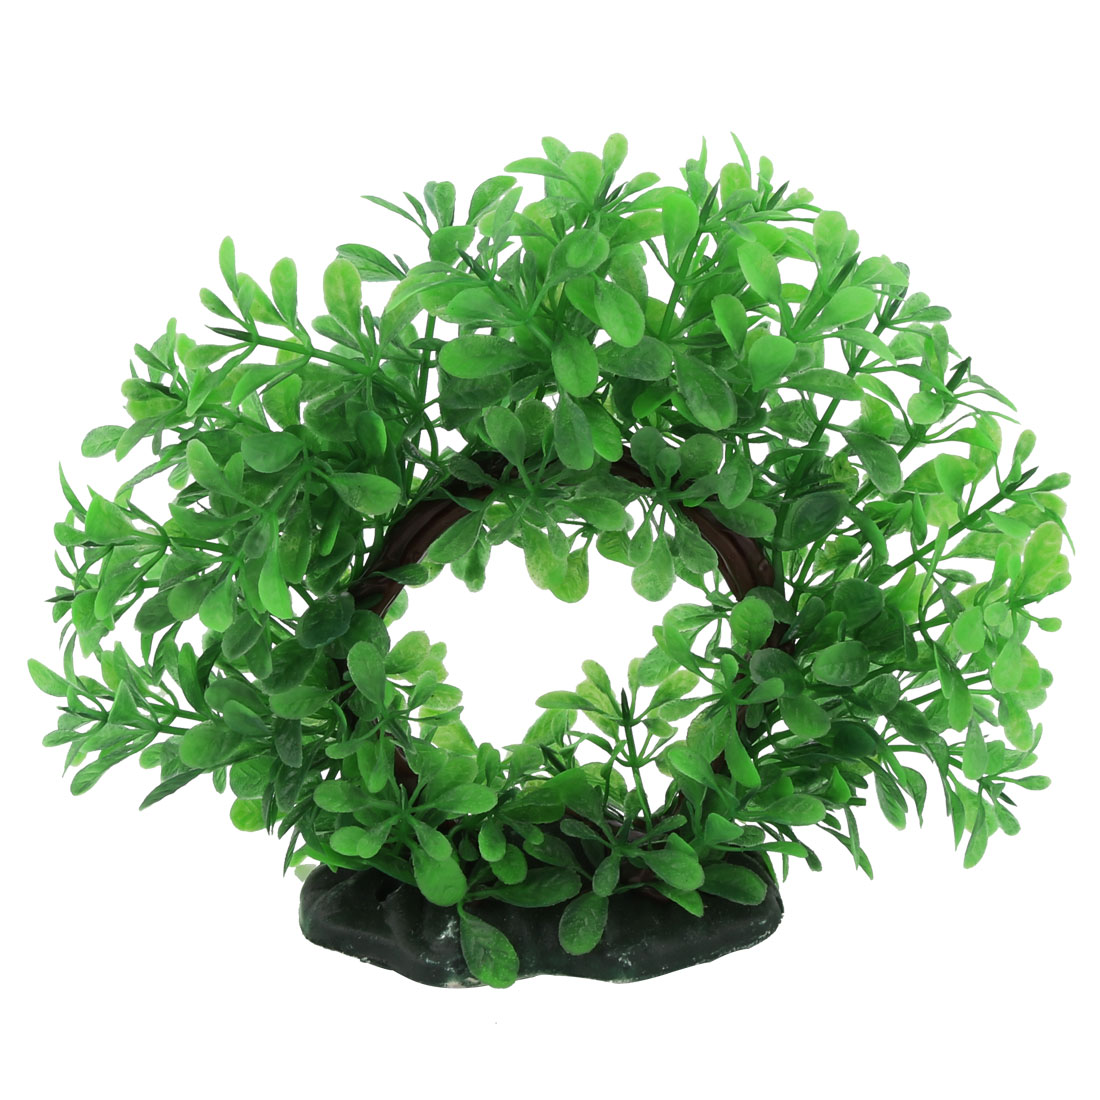 Aquarium Ceramic Base Plastic Fake Plant Grass Decoration Green 14cm Height